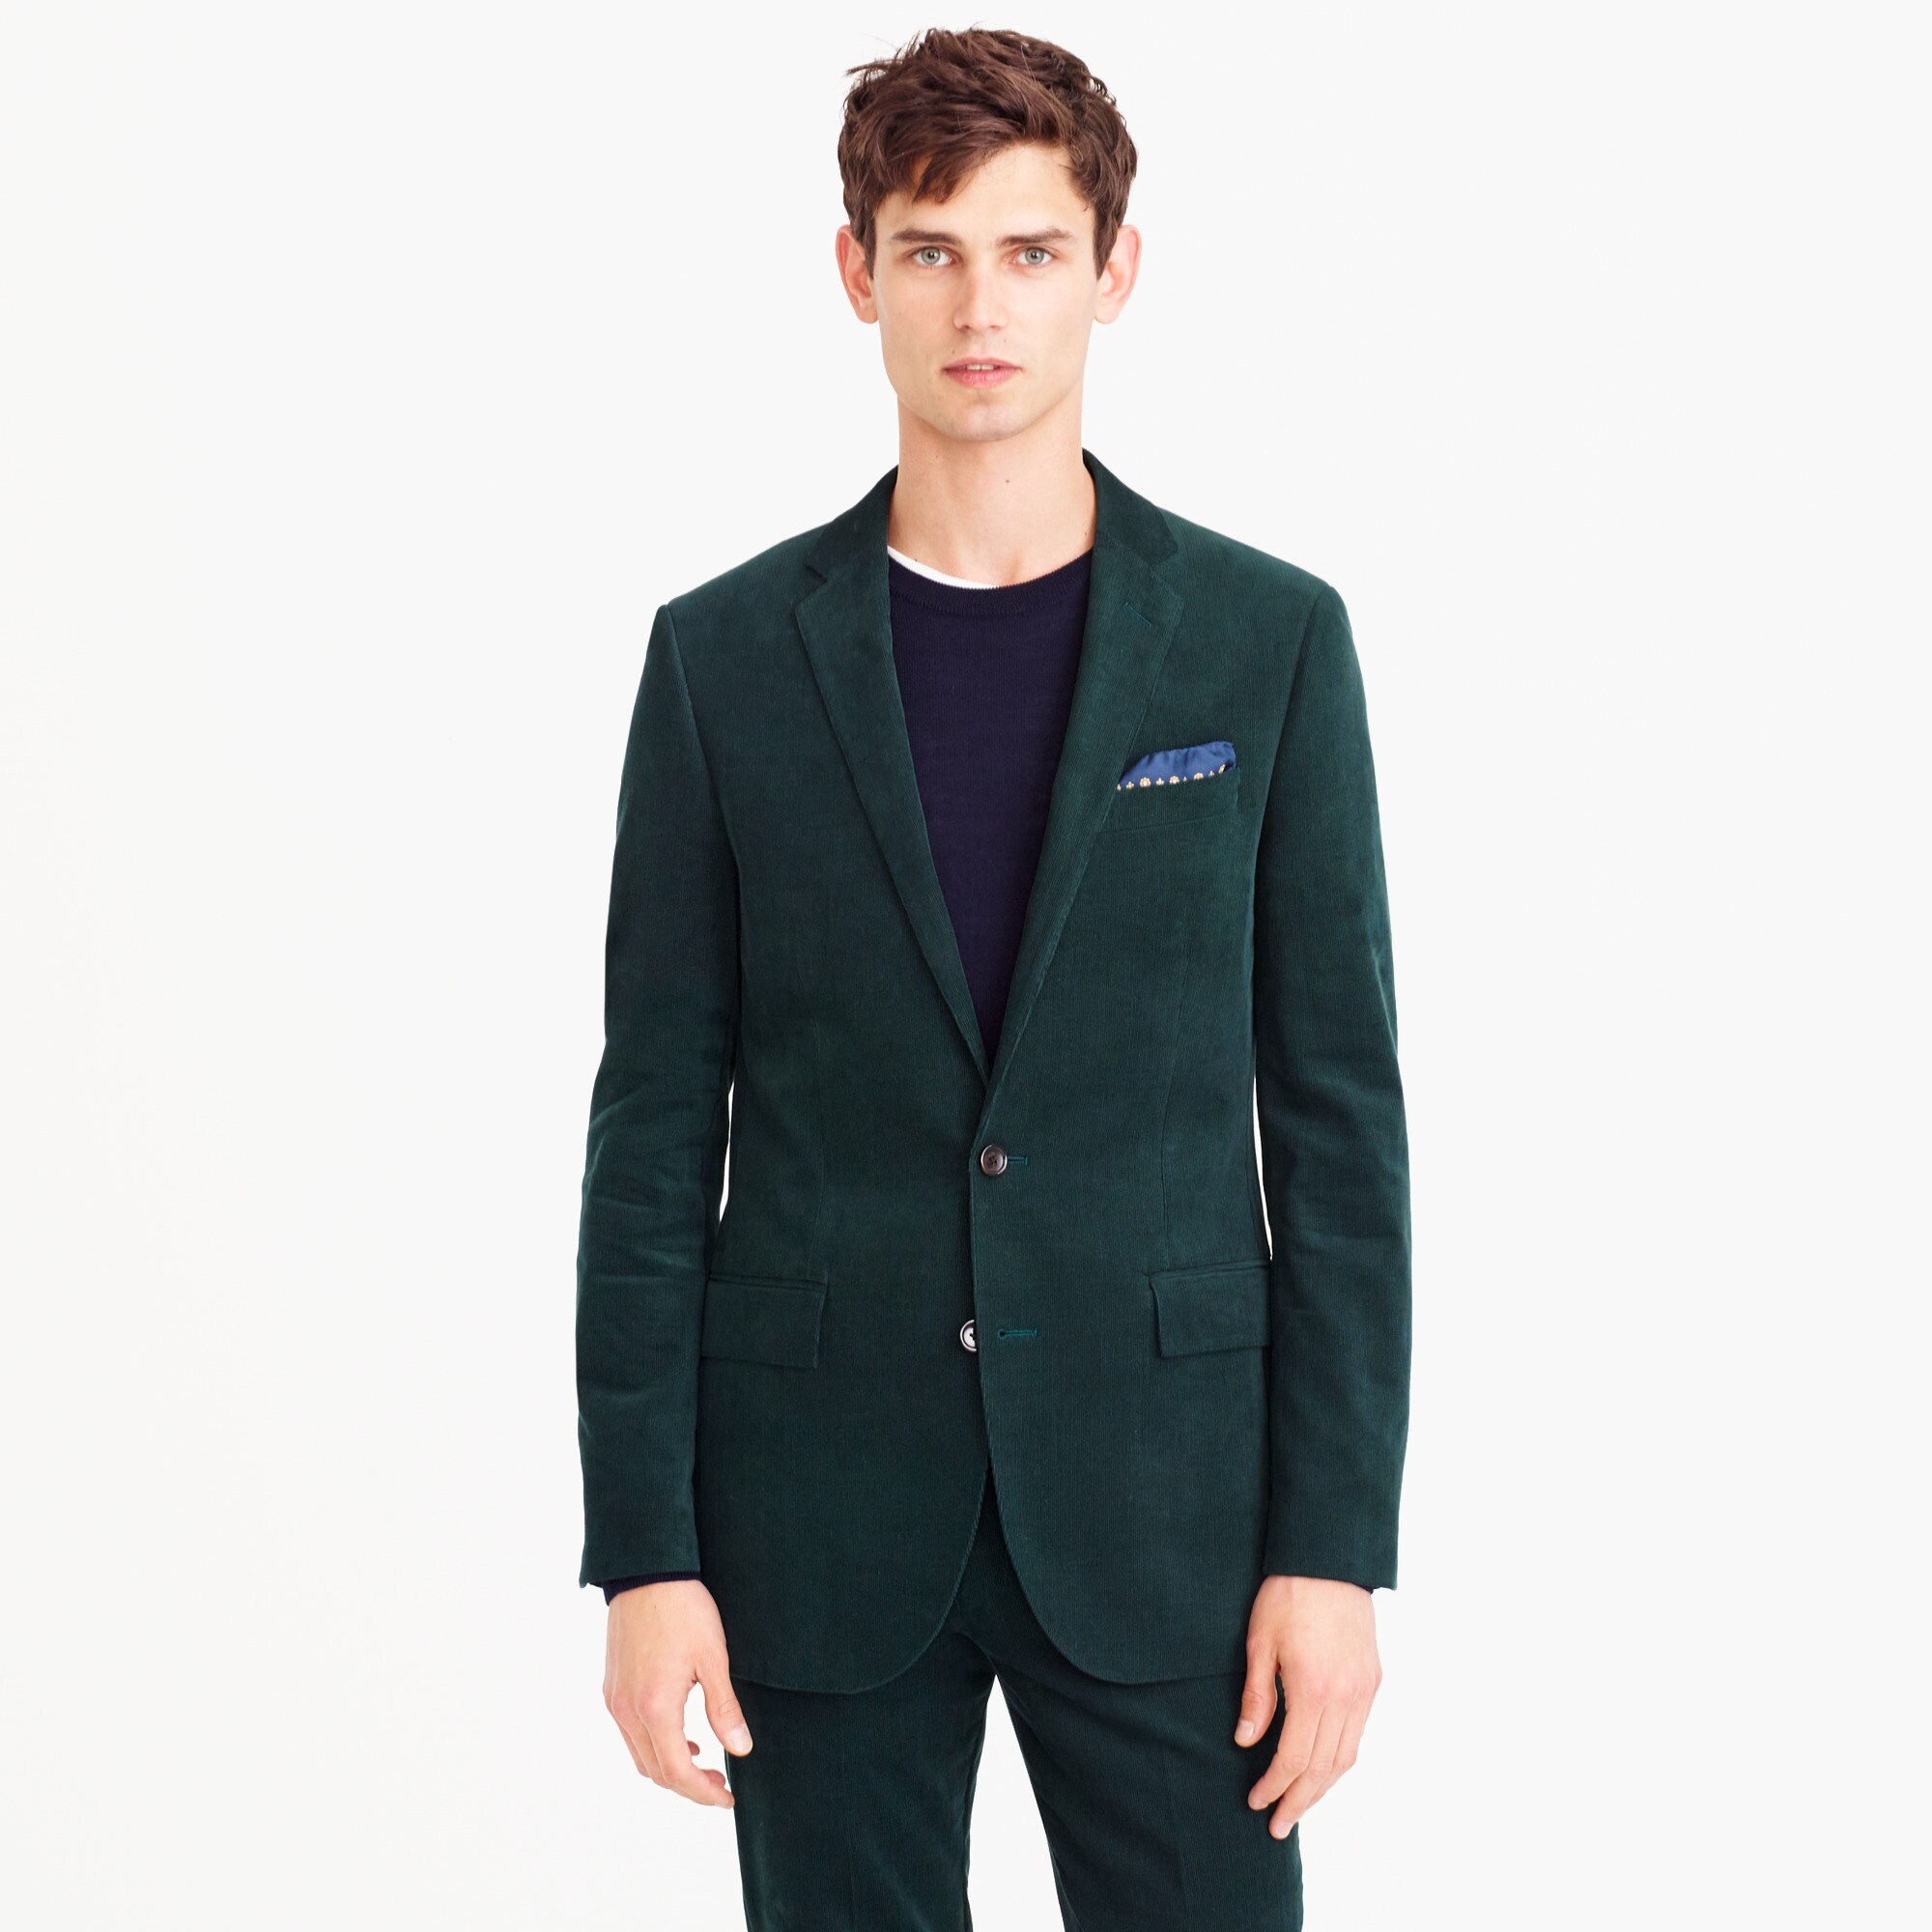 ludlow suit jacket in italian cotton corduroy : men's blazers